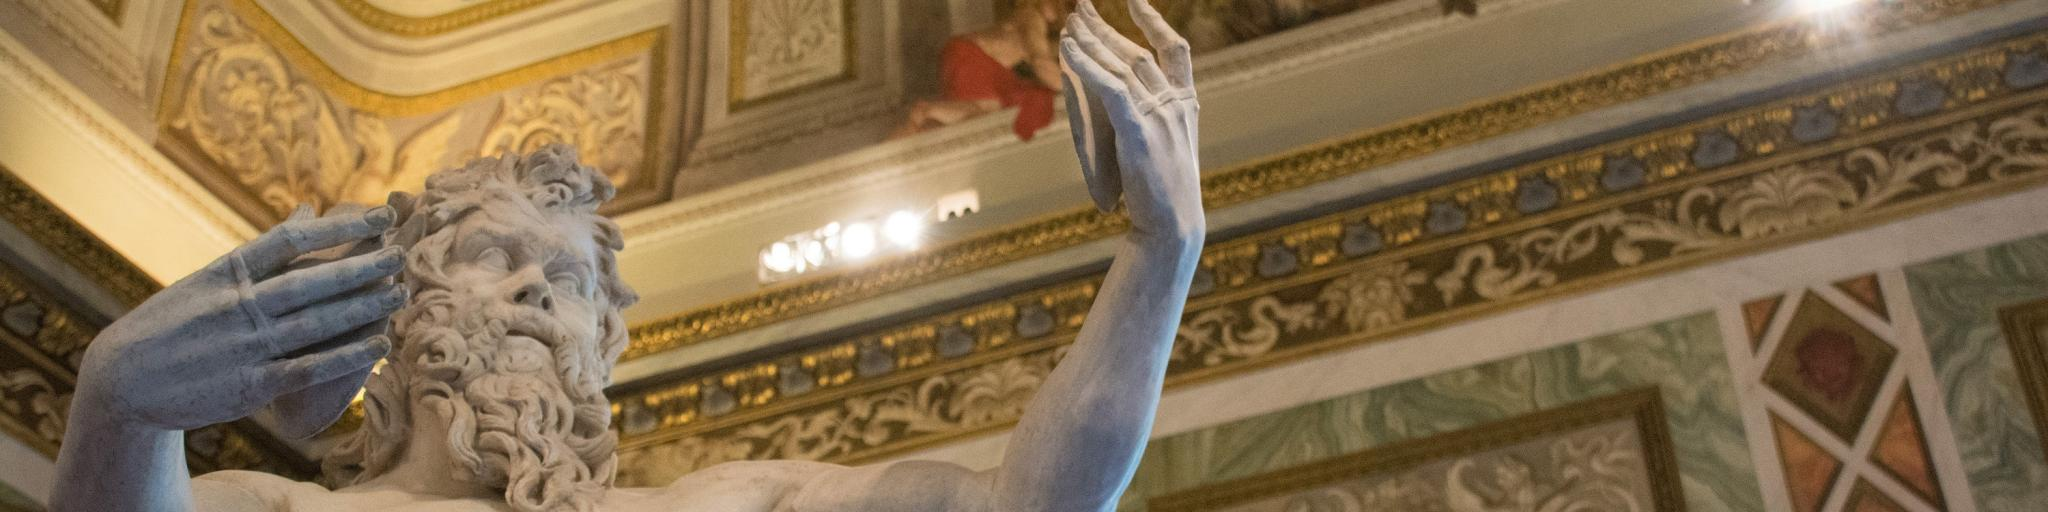 A statue at the Galleria Borghese holding his arms up, with very detailed yellow and red architecture in the background